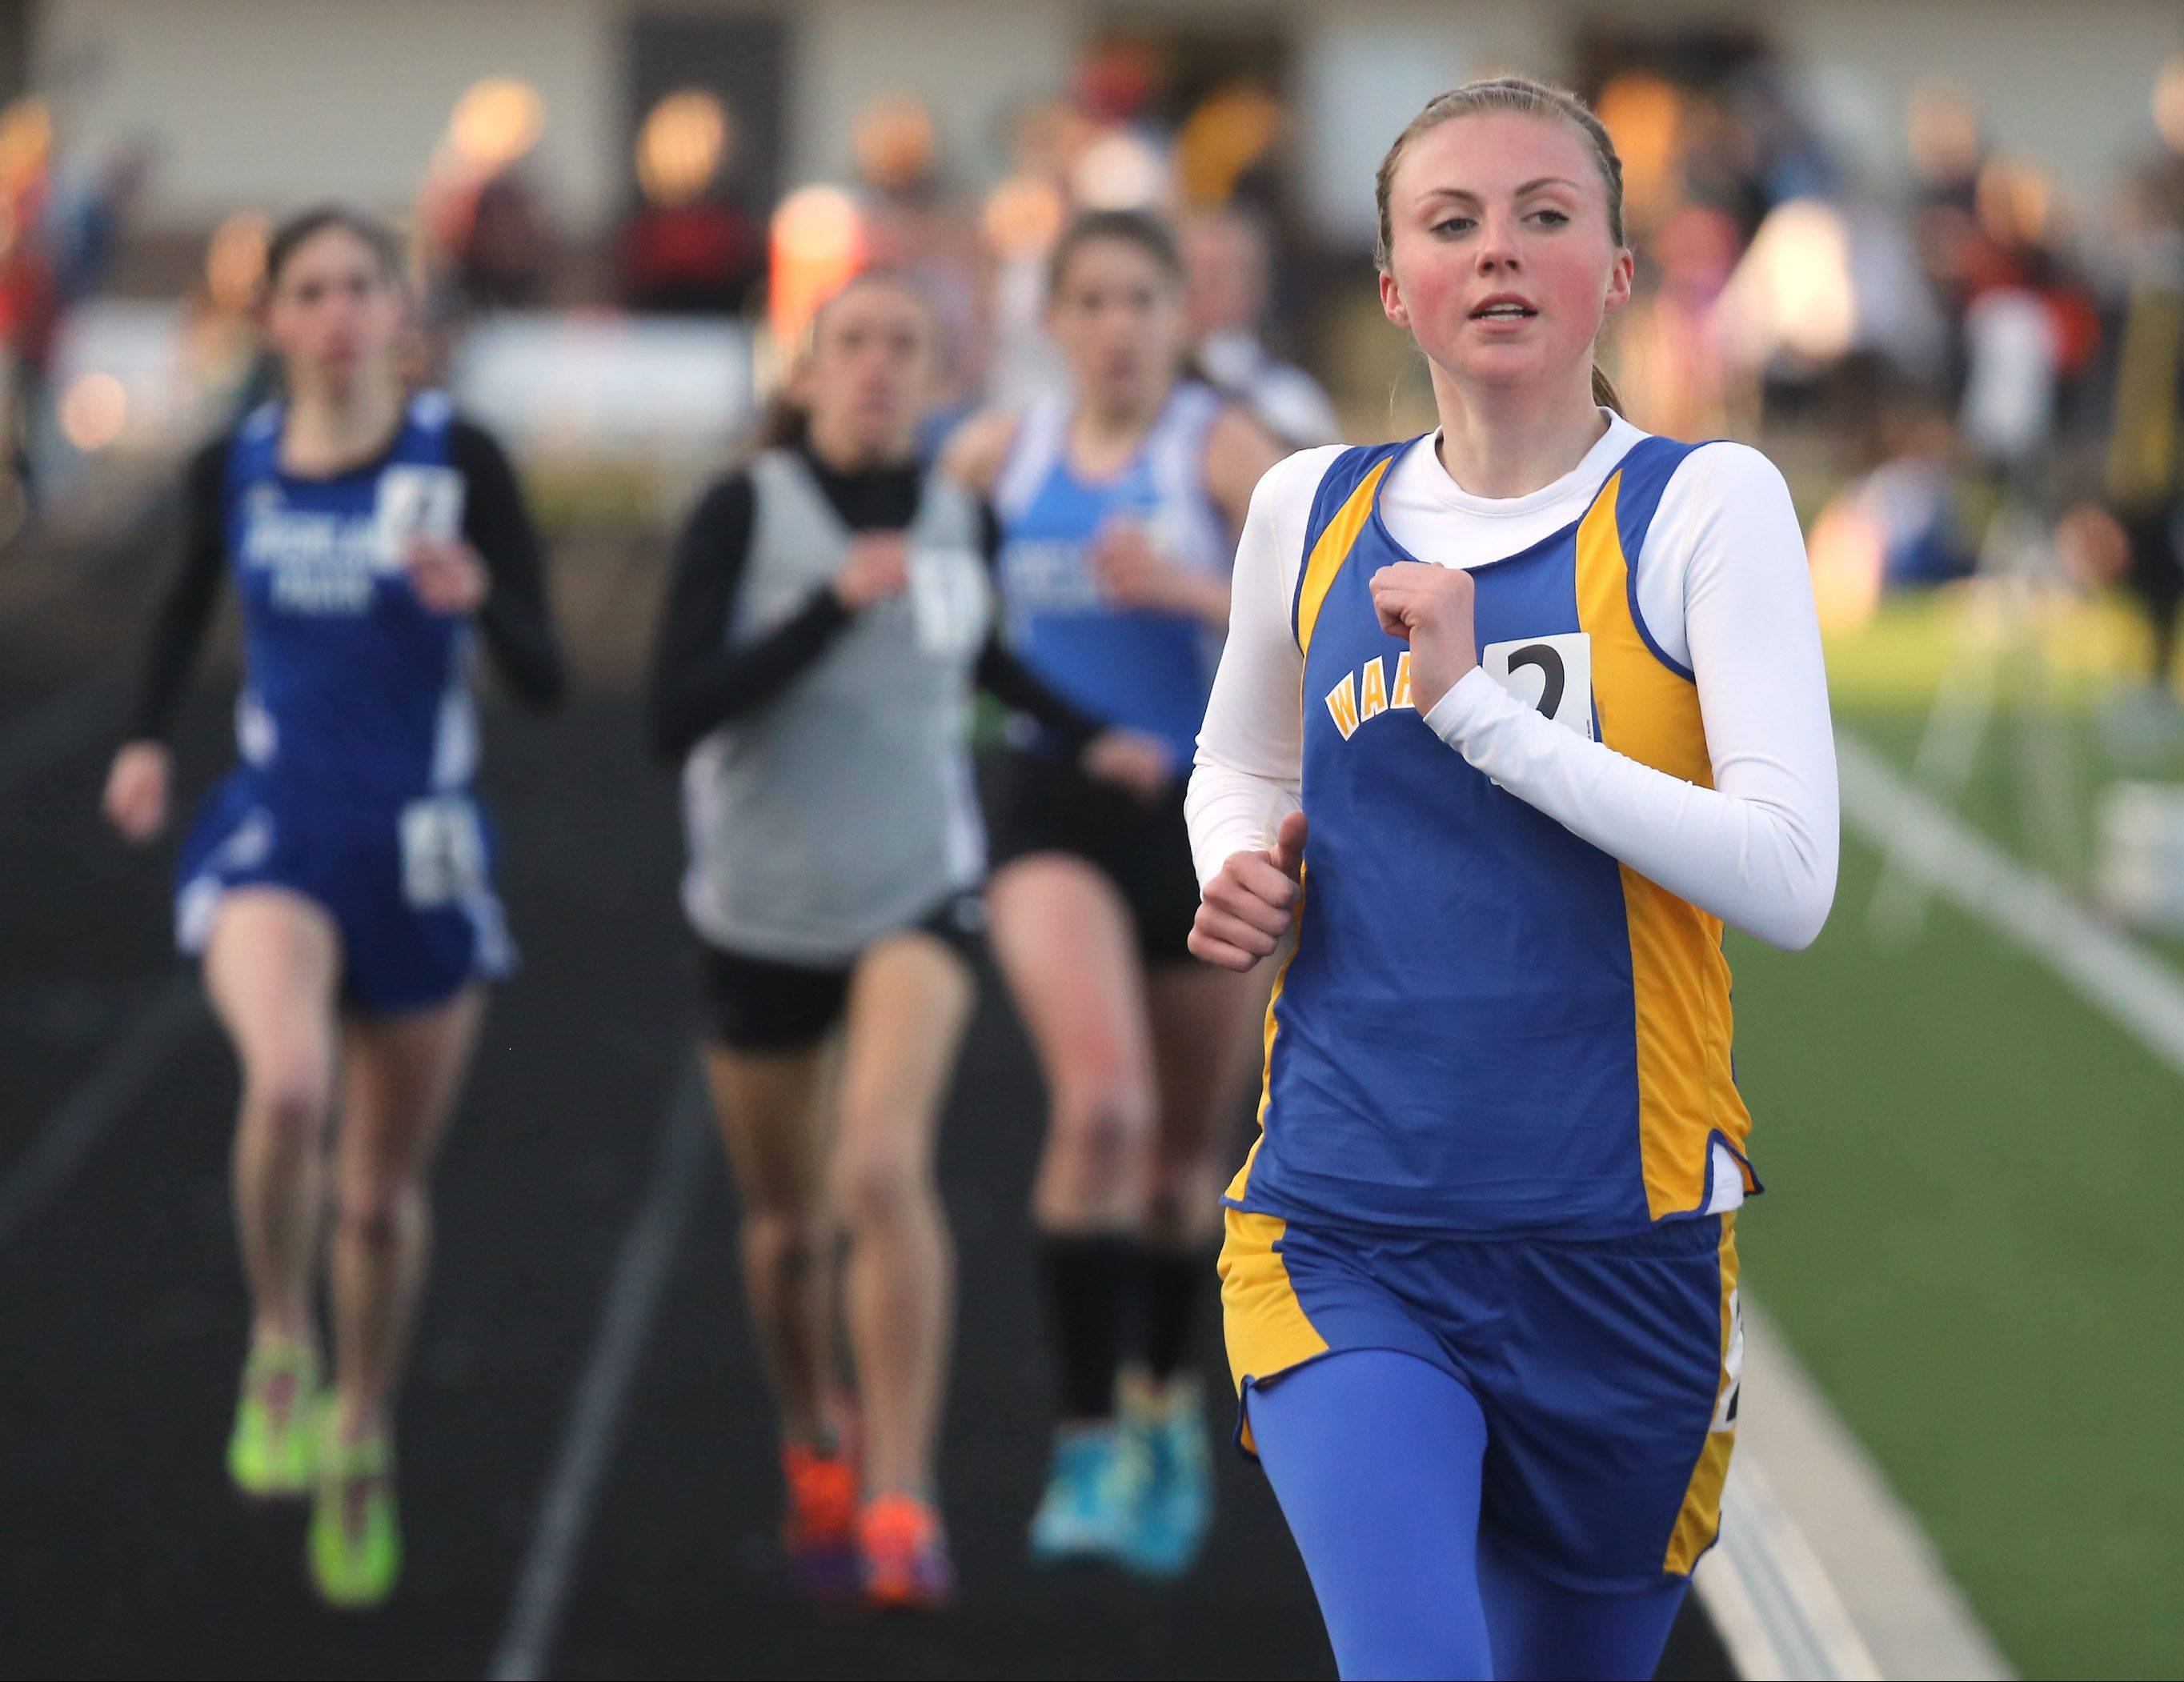 Warren runner Meg Tully leads the 3,200 for much of the race before ending up second during the Lake County meet Thursday at Grayslake North.